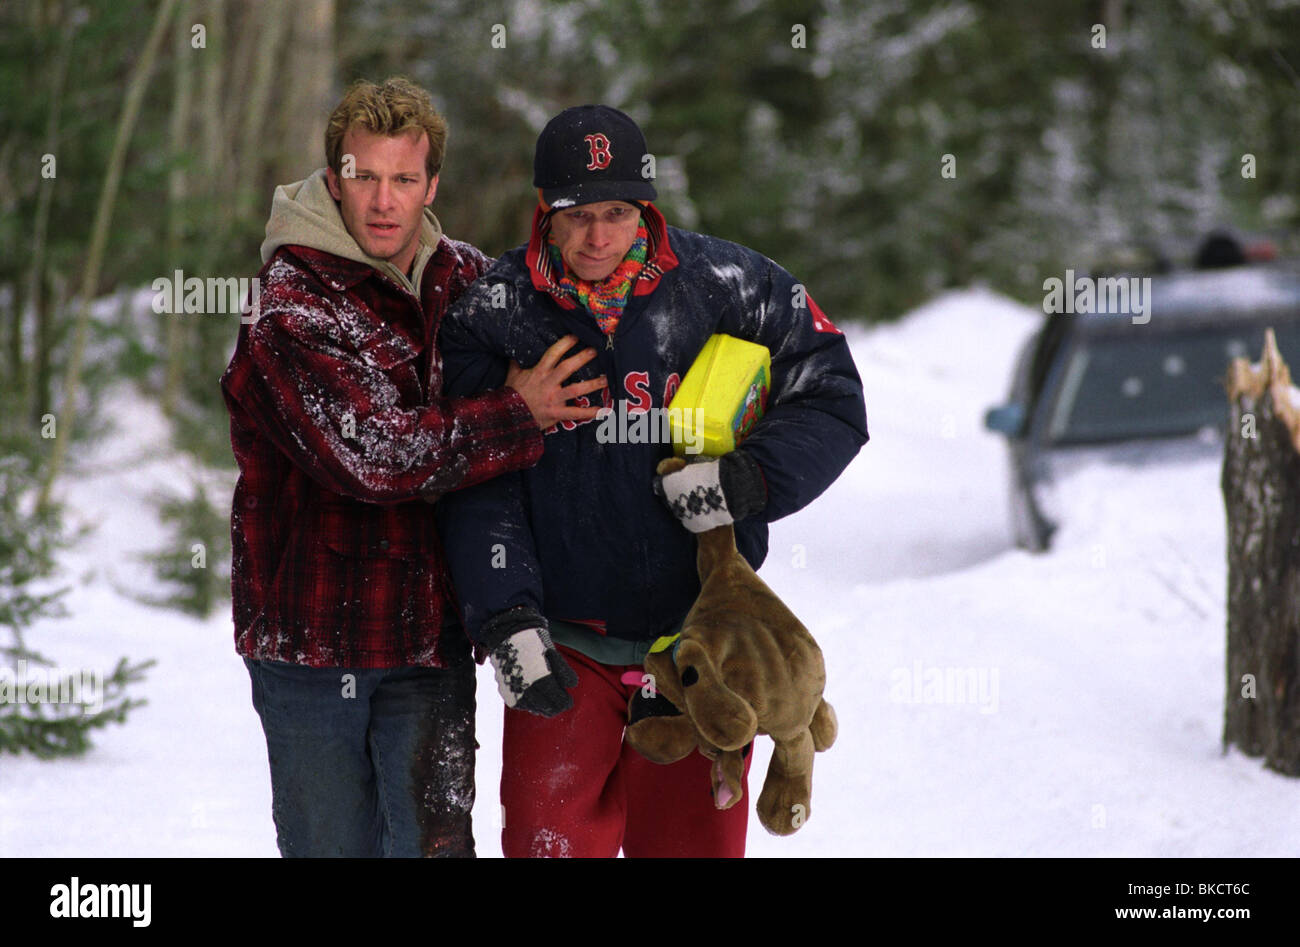 DREAMCATCHER (2003) THOMAS JANE, DONNIE WAHLBERG DRCH 002-C541 - Stock Image